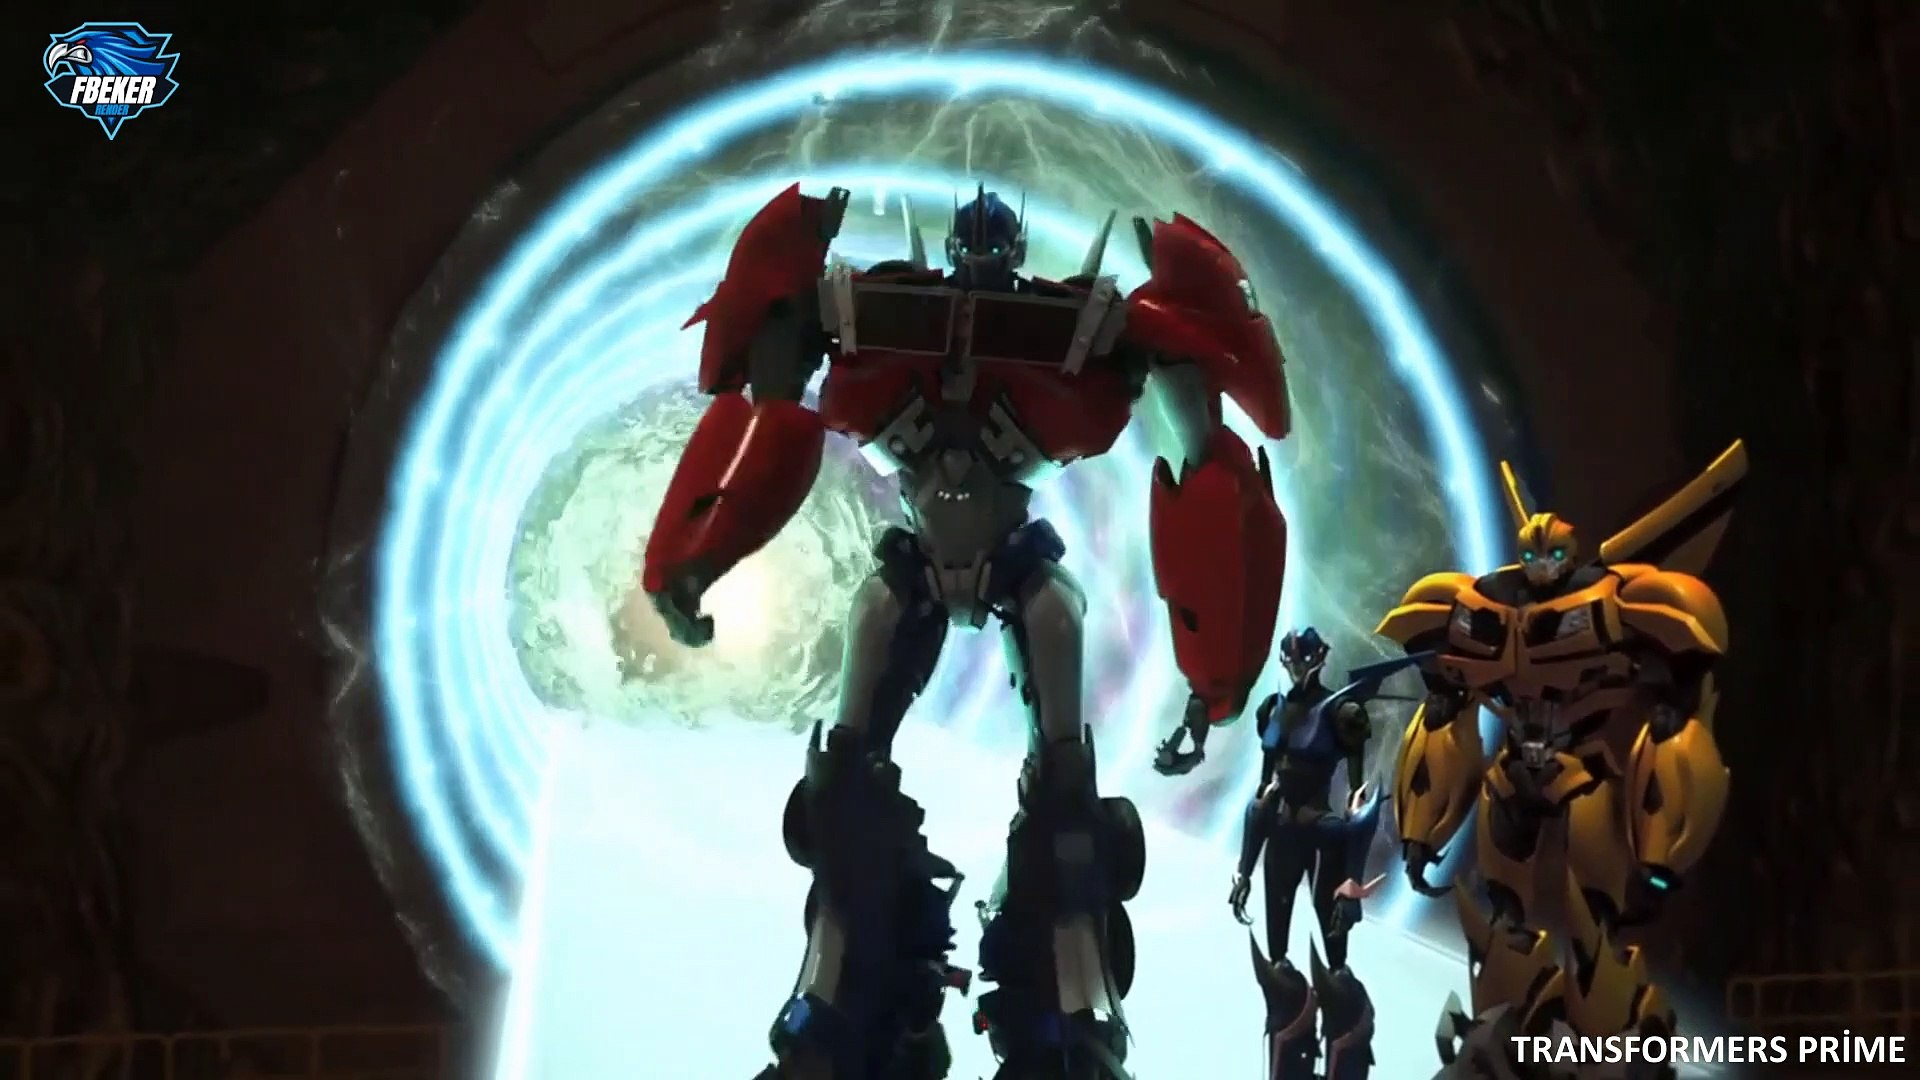 Transformers Prime 16.Bölüm Full Hd